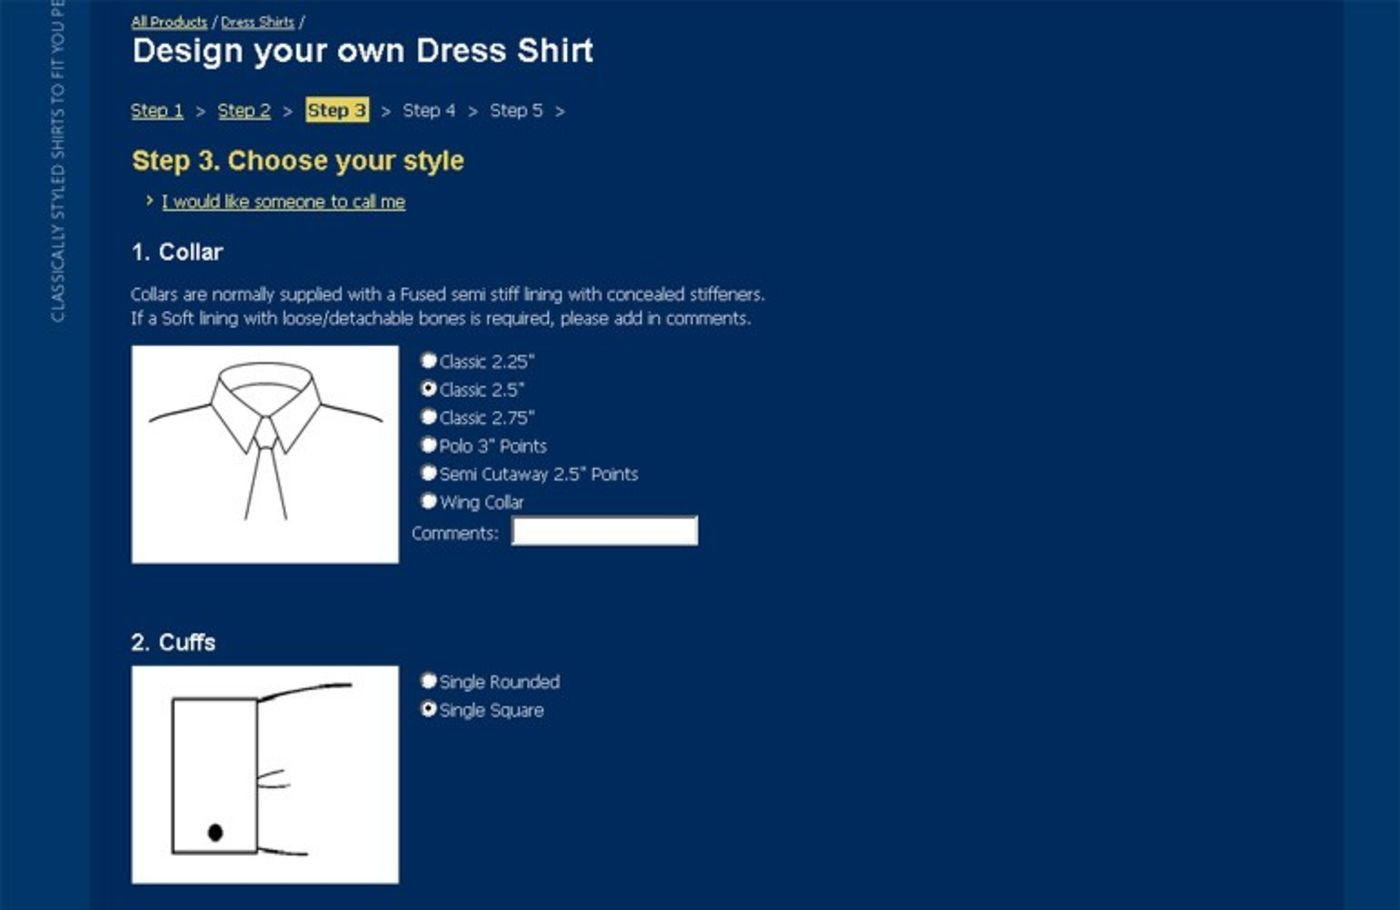 Shirts by Weisters Design Your Own Dress Shirt Step 3